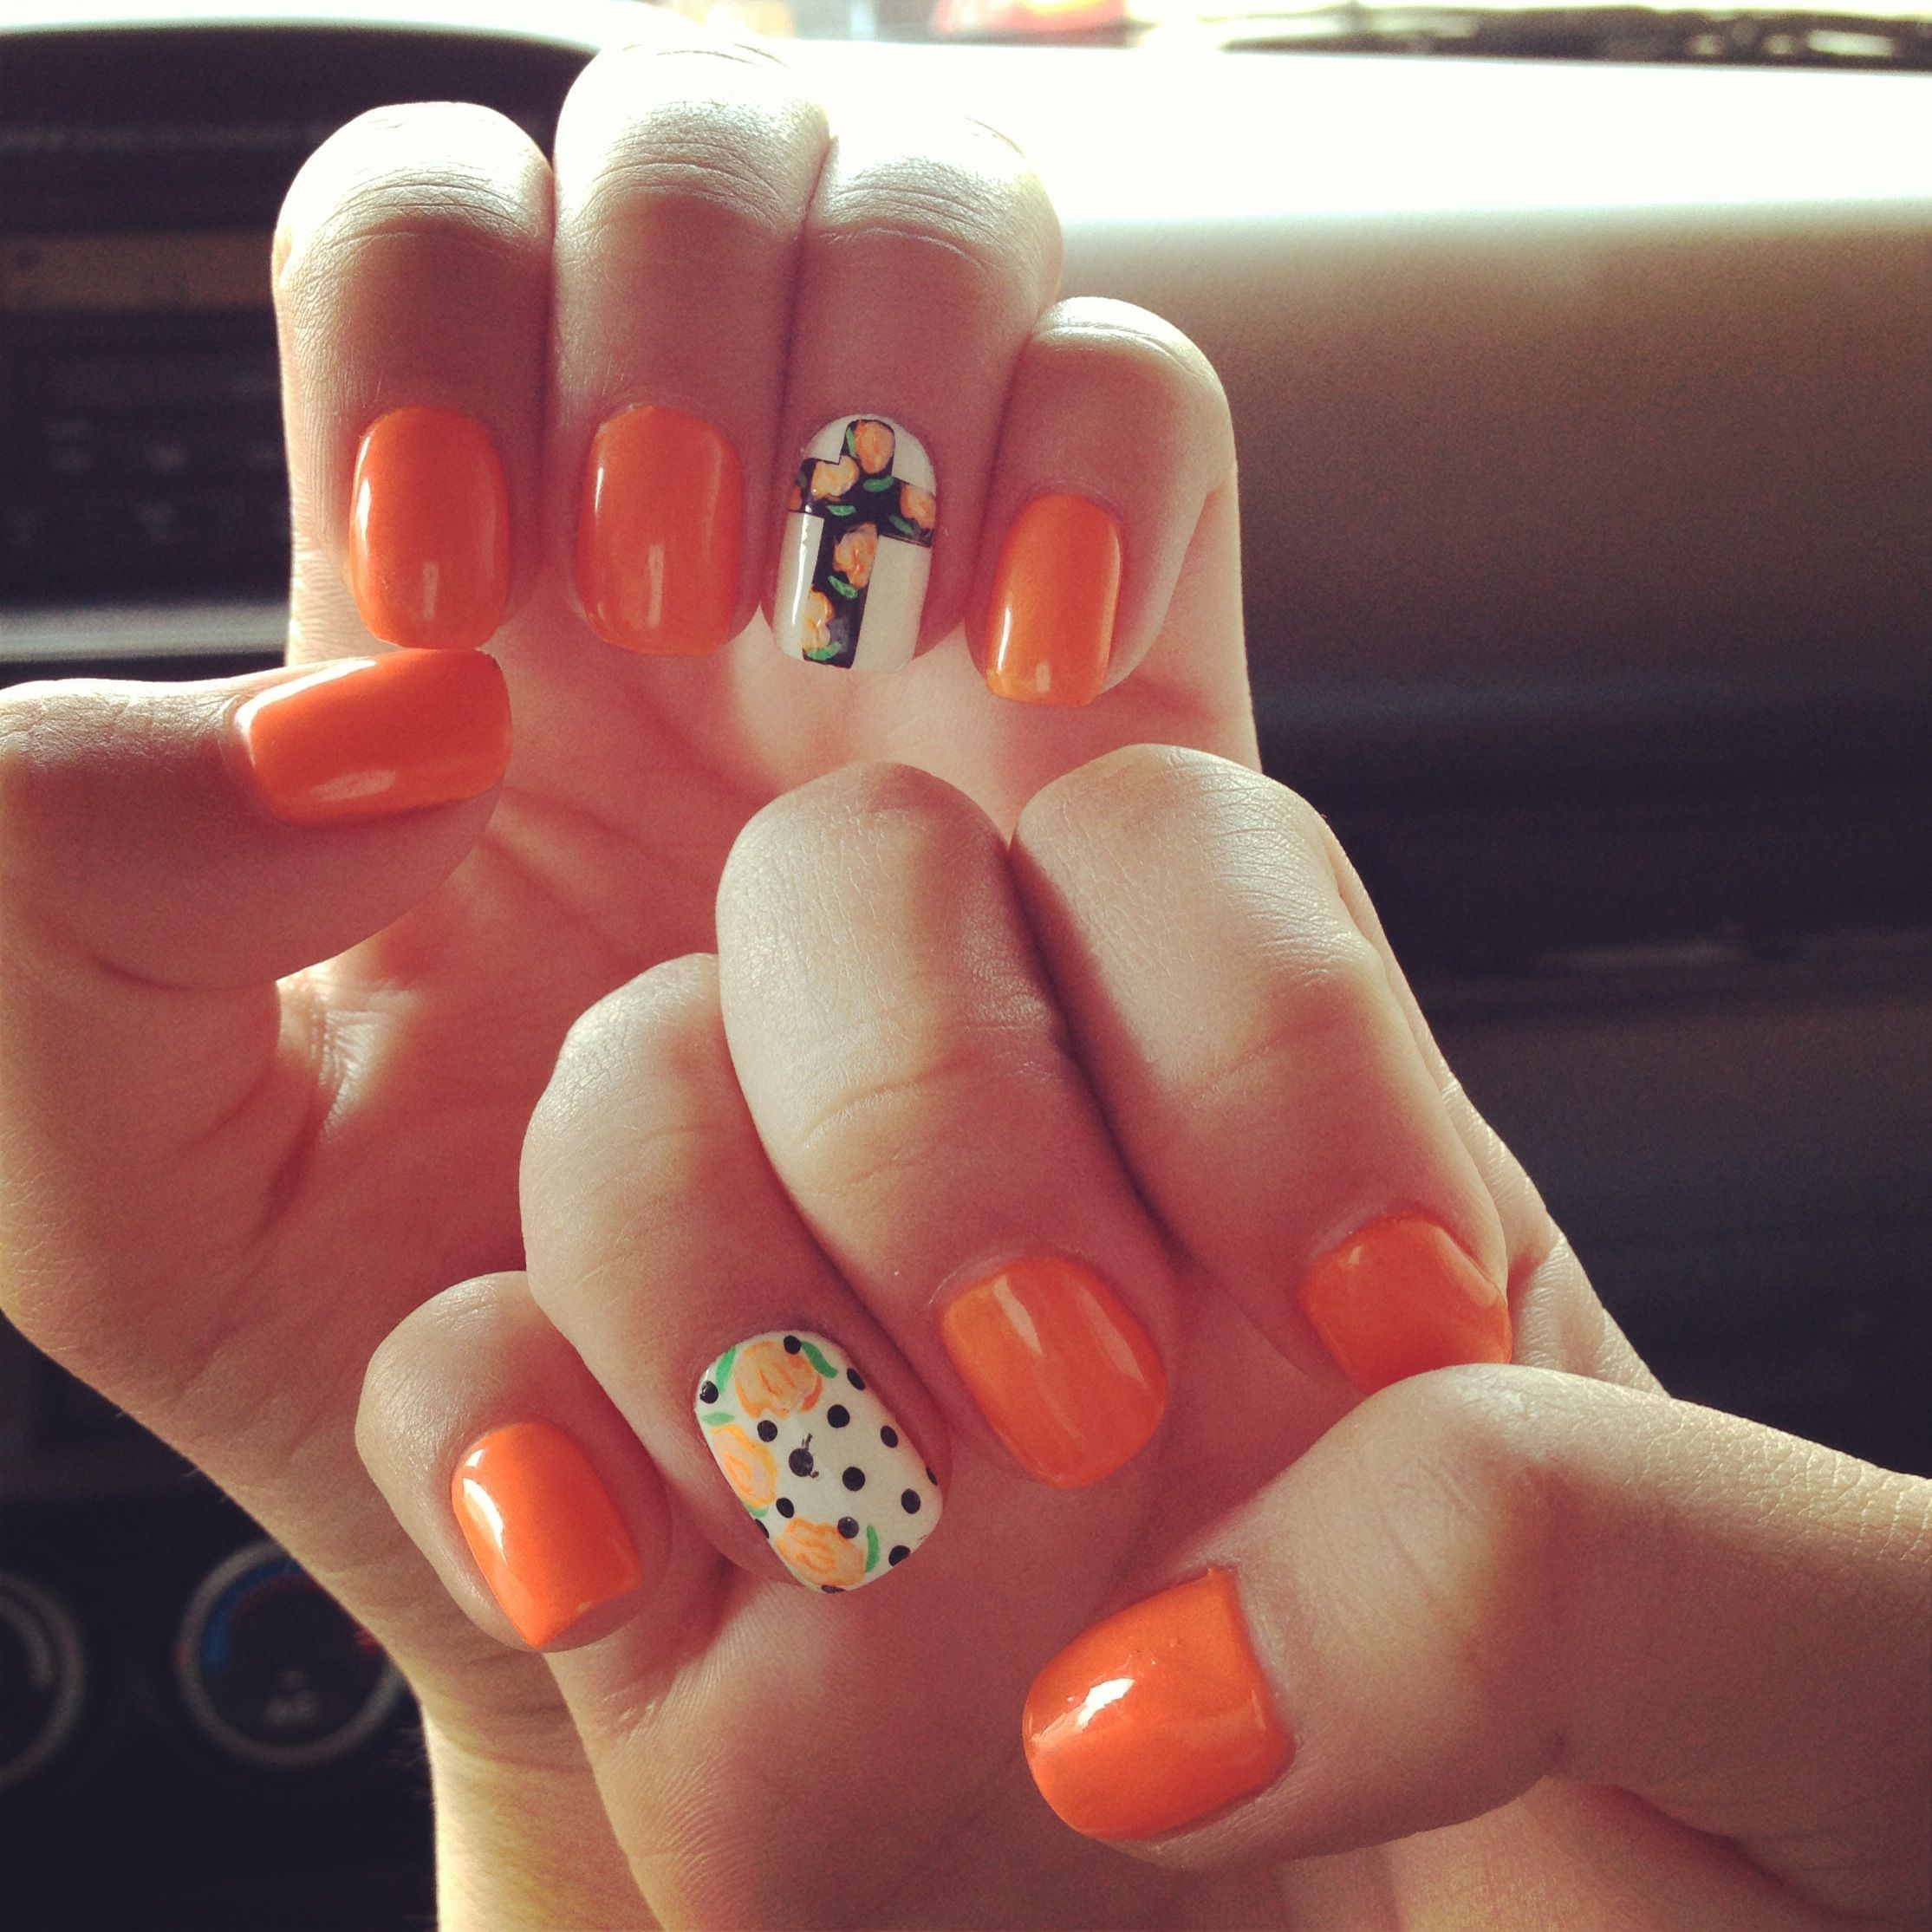 Cross and rosses   My nails designs   Pinterest